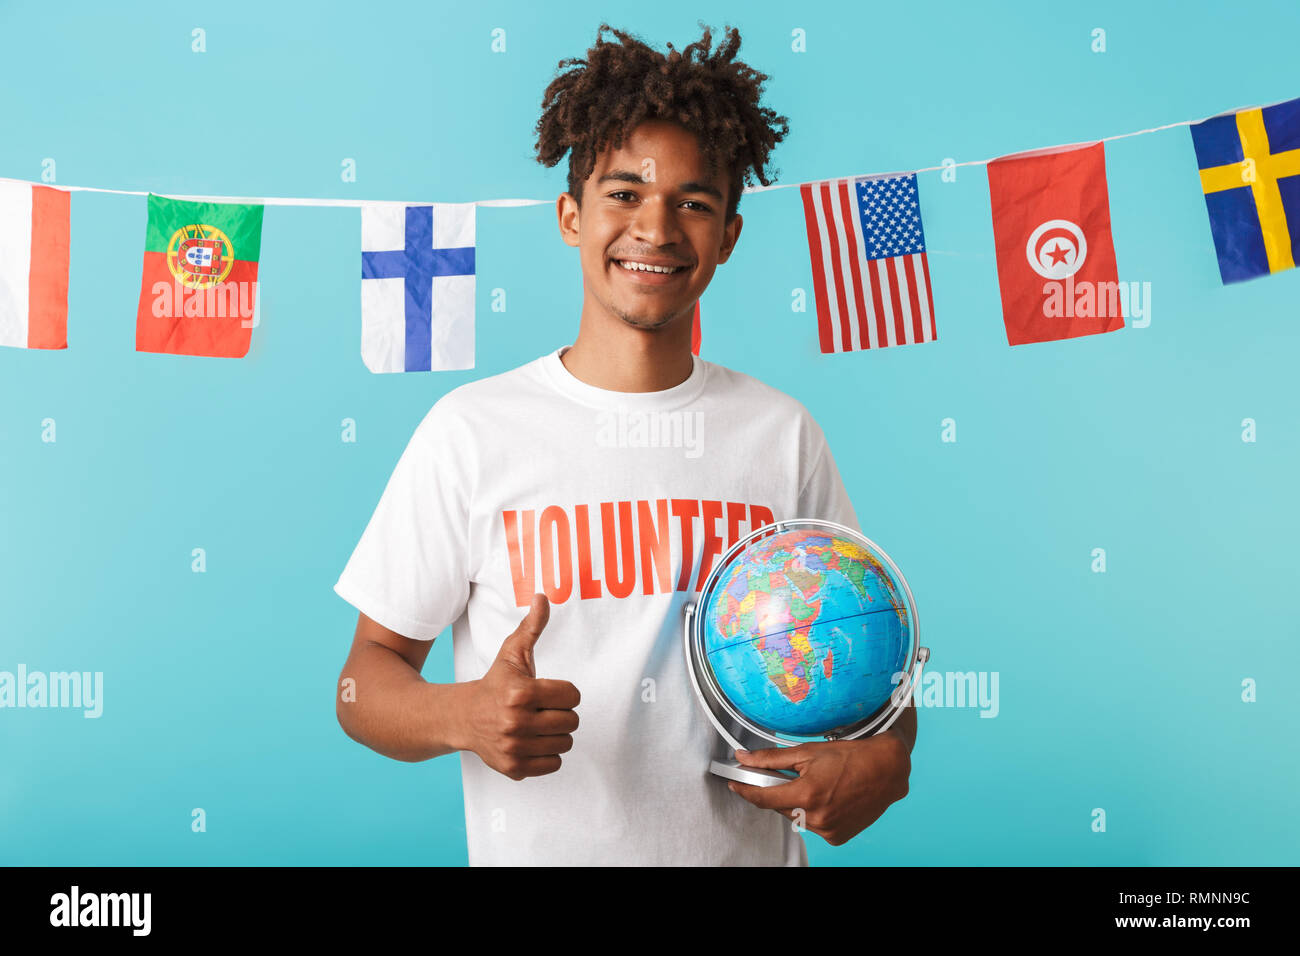 Portrait of a smiling young african man wearing voluteer t-shirt standing isolated over blue background, showing thumbs up - Stock Image